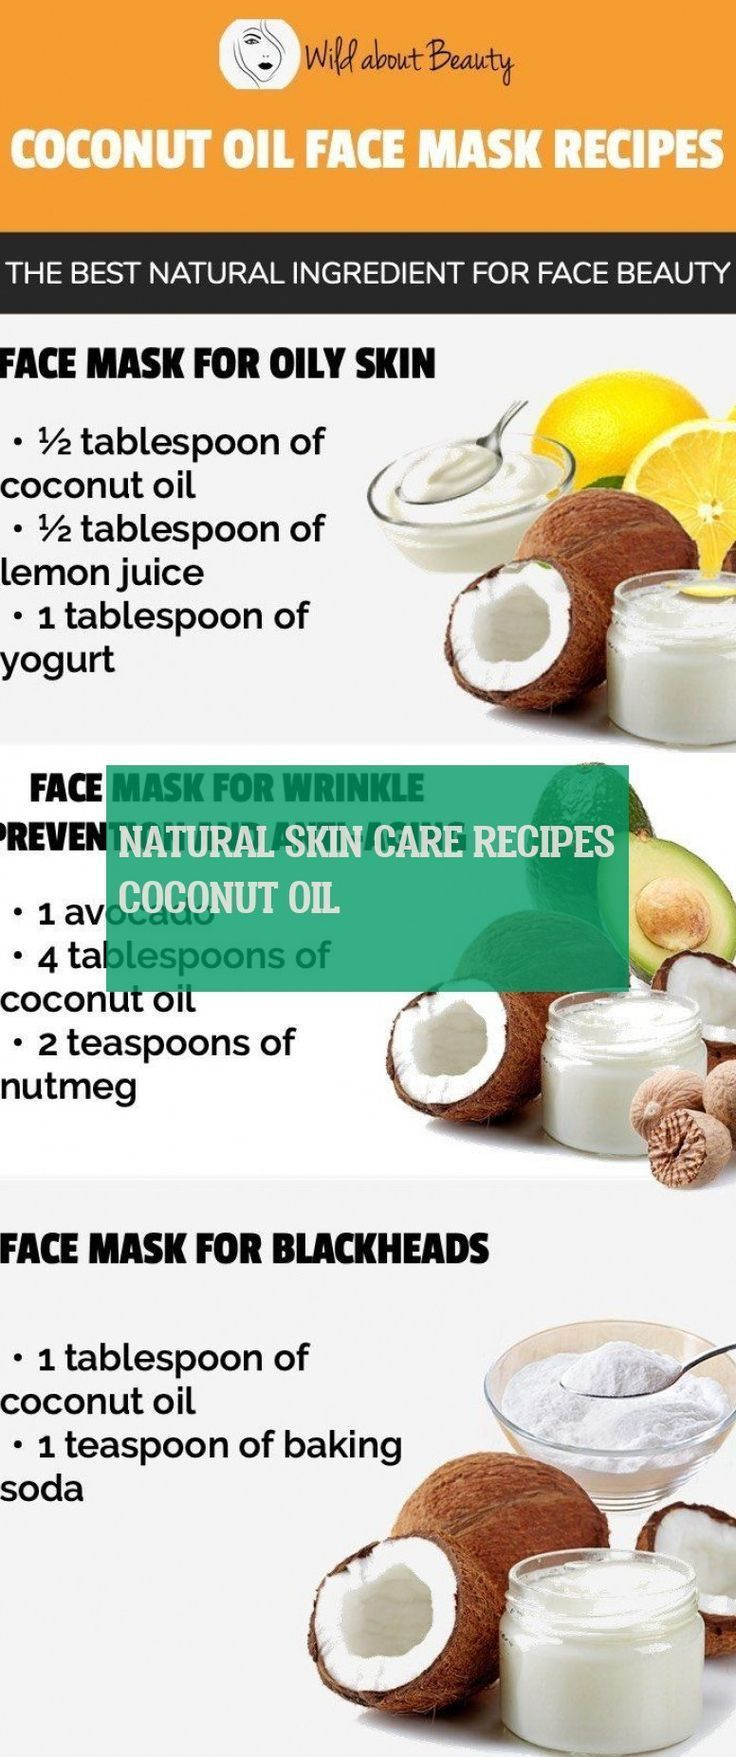 # Skincare Recipes - Natural Skin Care Recipes Coconut Oil & Natural Skin Care ...  -  Hautpflege-Rezepte